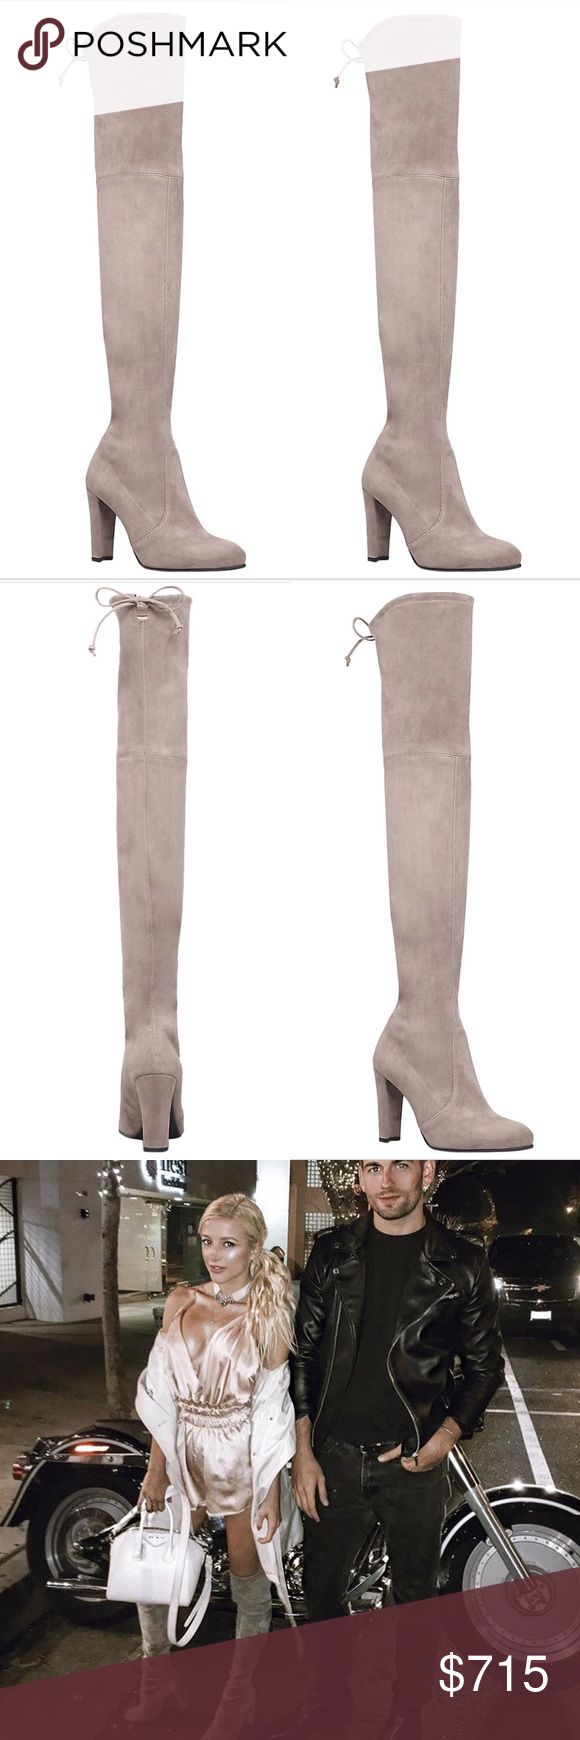 "Worn 3 HRs! Stuart Weitzman Highland Suede OTKs Stuart Weitzman over the knee boots in Suede Taupe light grey. These have literally only been worn for 3 hours to a quick dinner at a nice steak house-no dancing or even much walking. I could talk SW OTKs all day. The only reason I am selling is because I am for ONCE choosing comfort over fashion, and would like to turn my 3.75"" heel highlands into low heel OTKs, at the lose of my sex appeal  You will not find this size/color for cheaper. Price…"